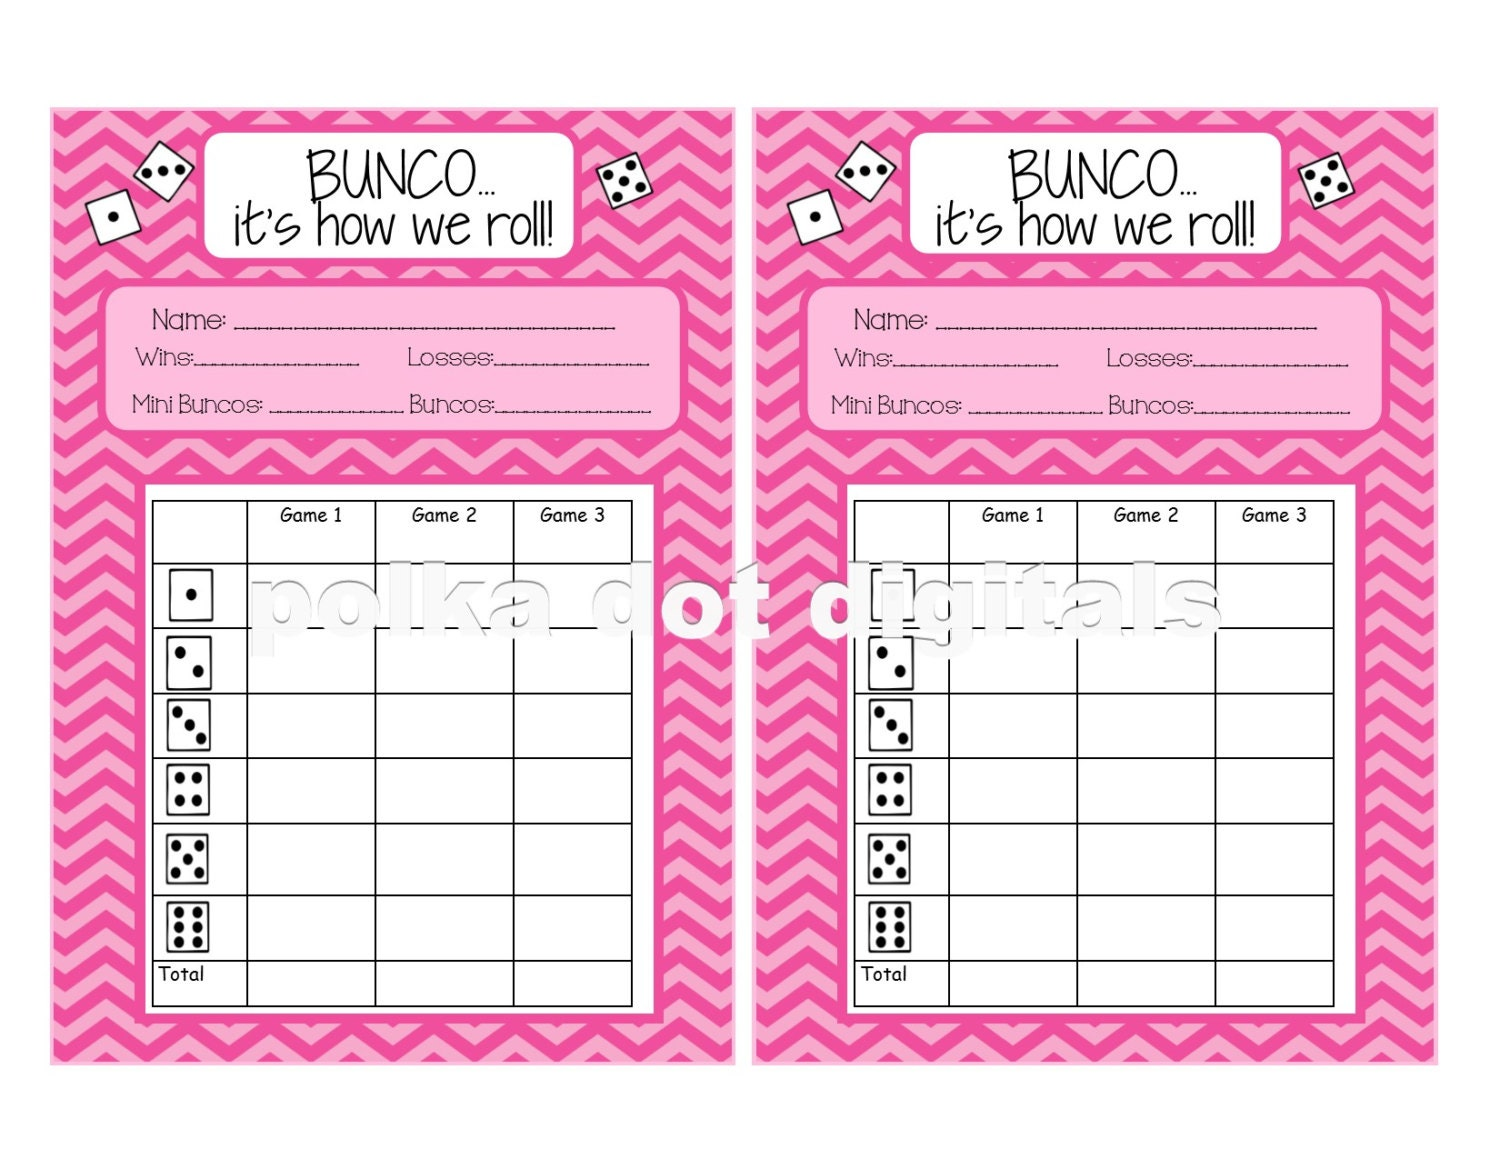 free bunco scorecard template - buy 2 get 1 free complete set pink chevron bunco score card